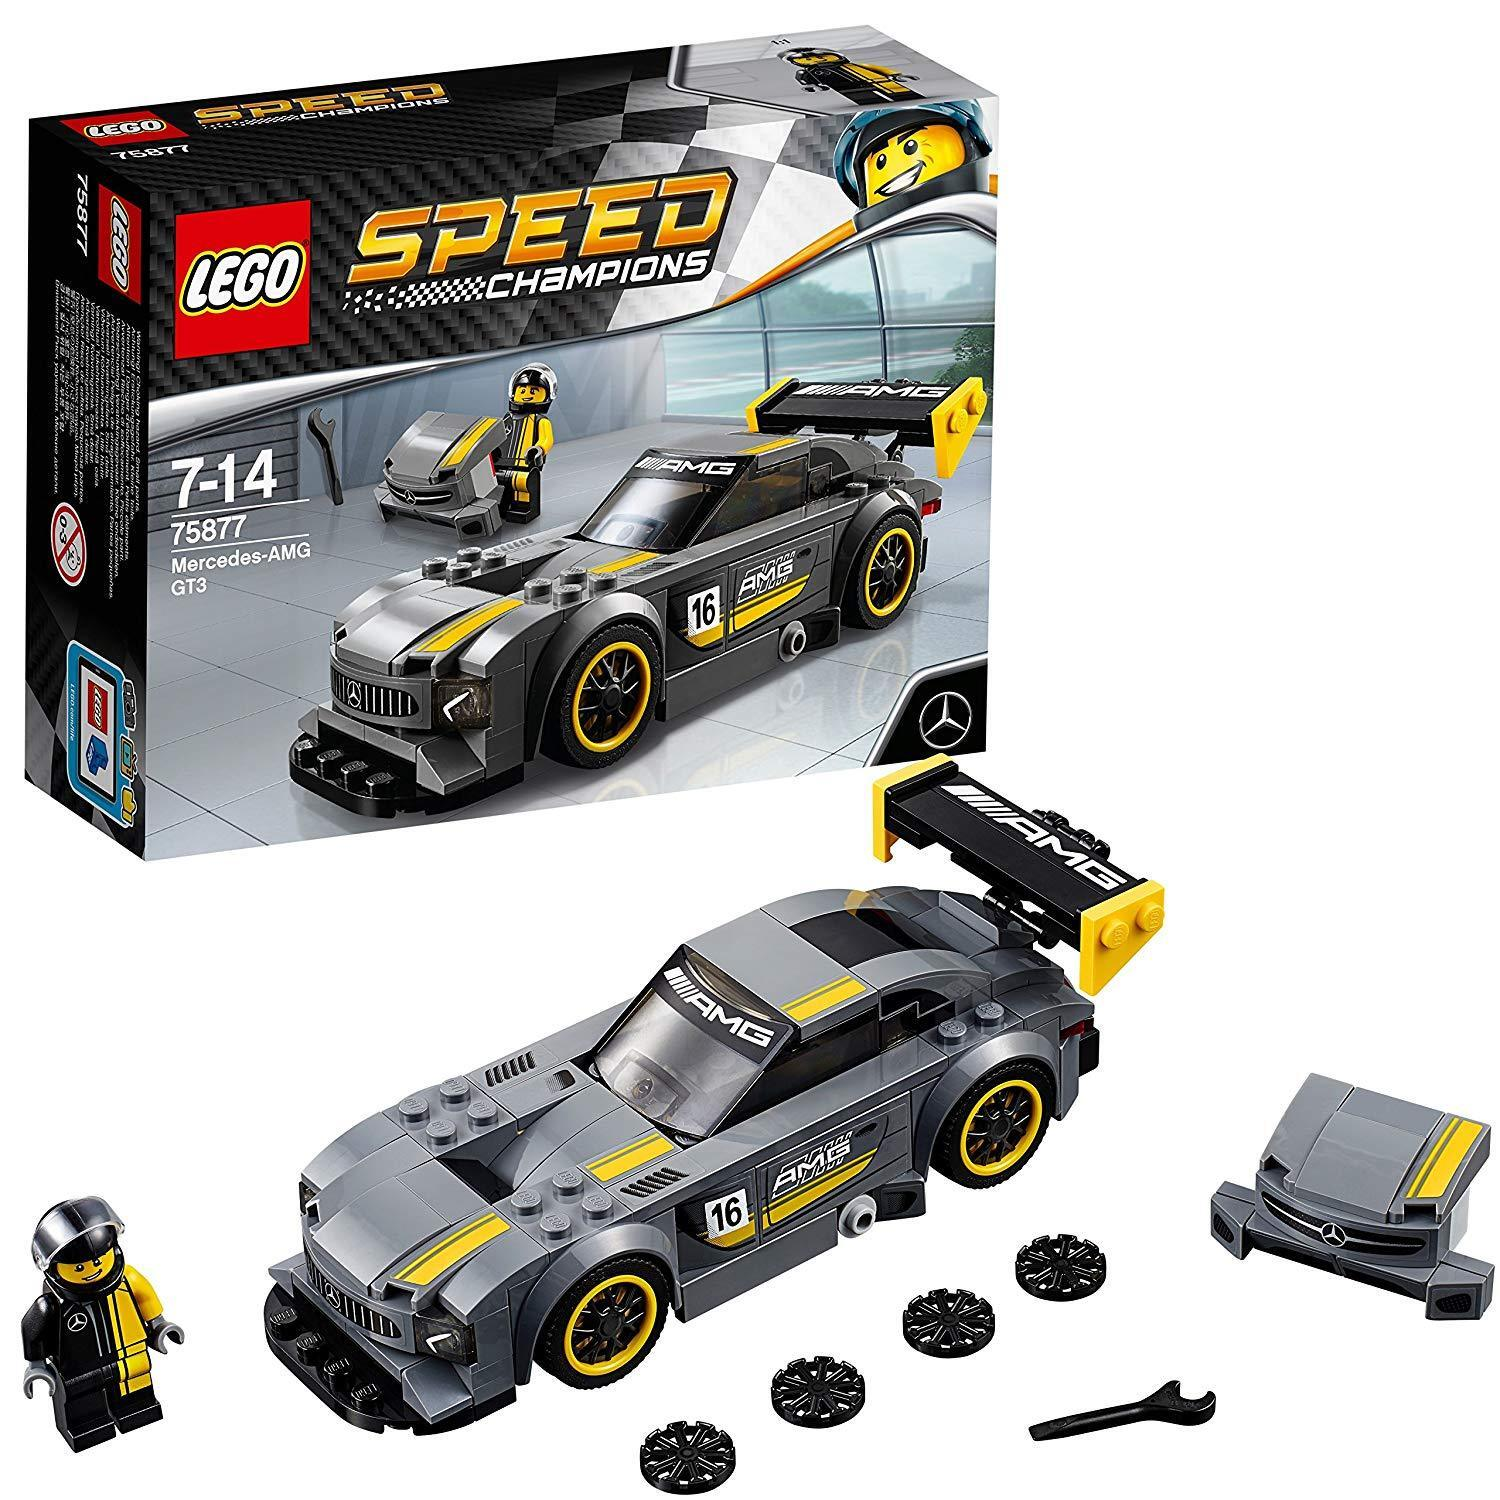 LEGO 75877 Mercedes AMG GT3 Car Driver Minifigure Toy Kid Present Fun Race